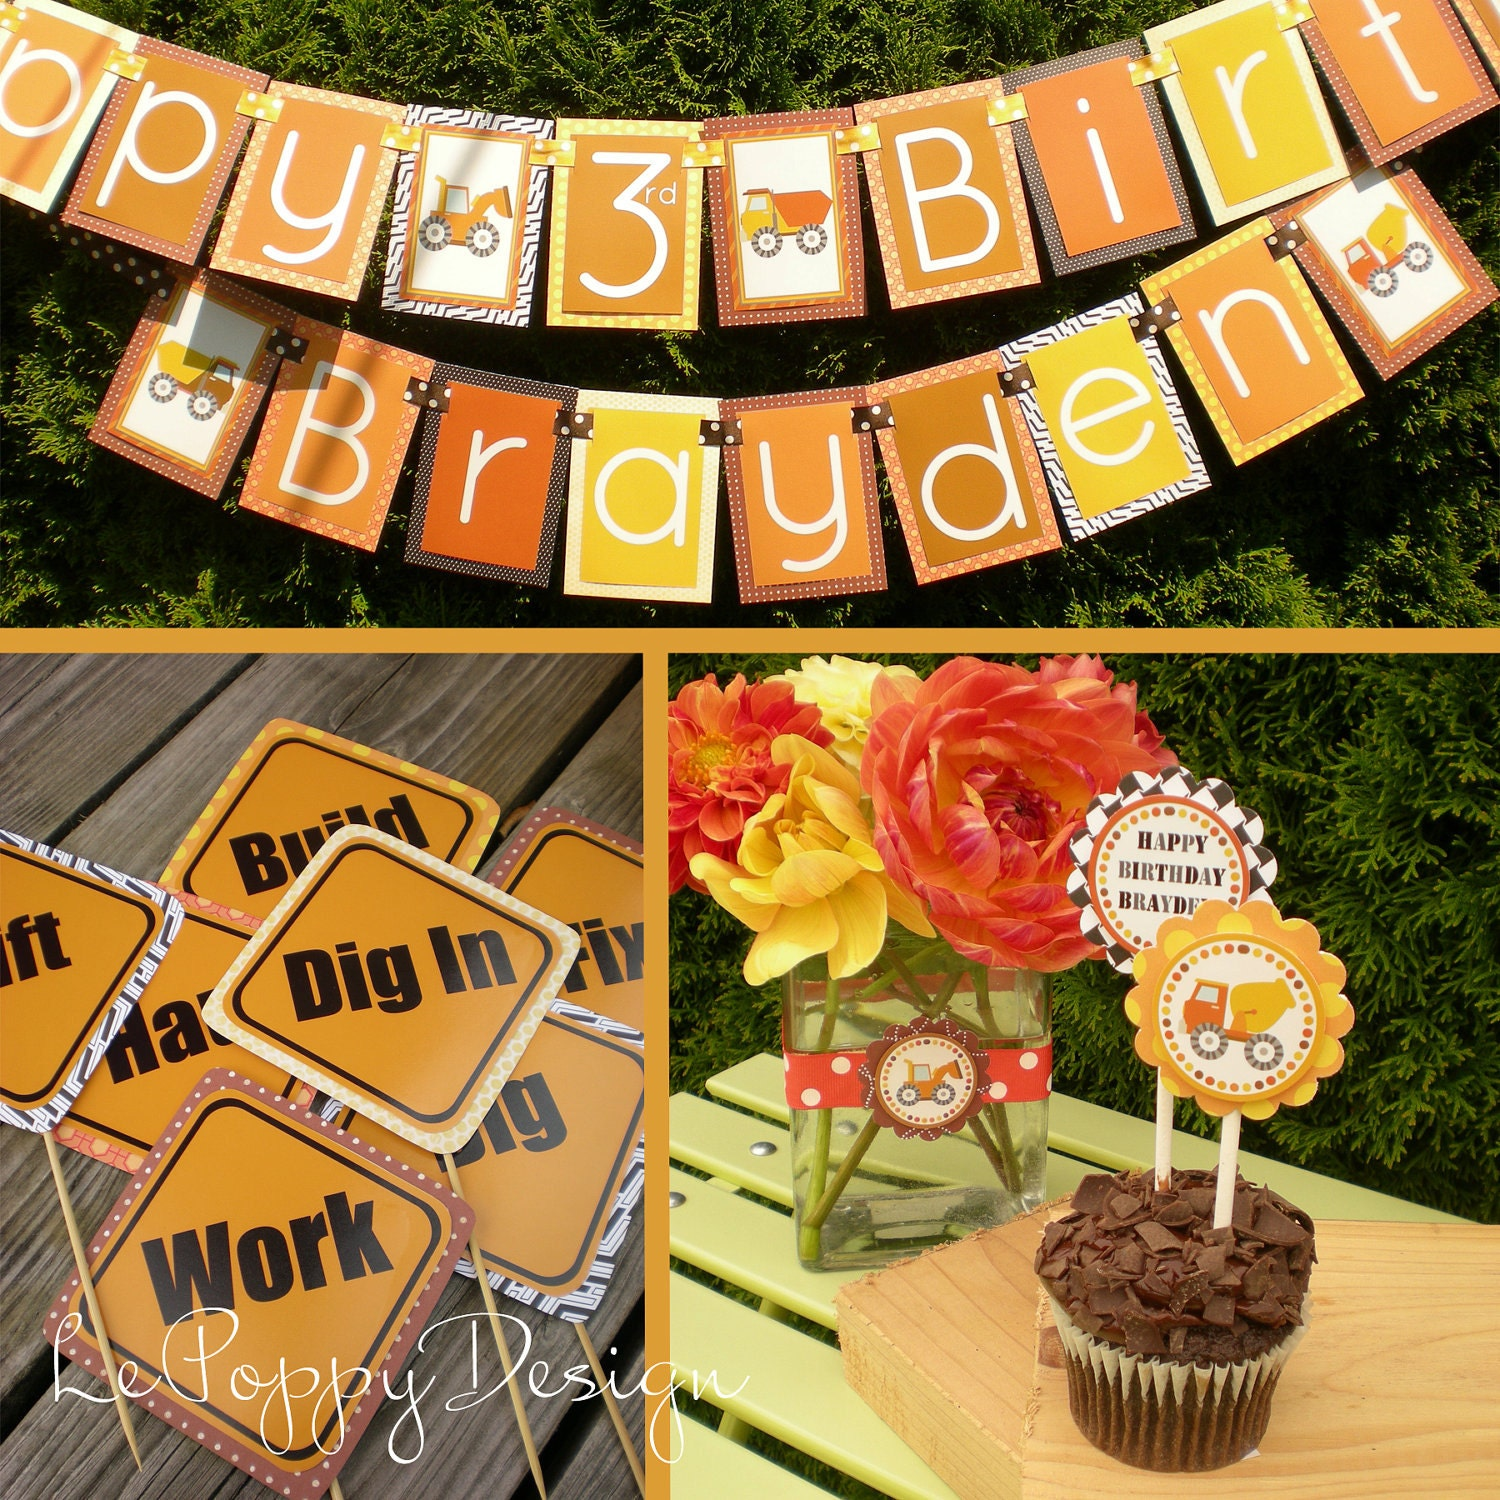 Construction Birthday Party Food Ideas: Construction Birthday Party Decorations Fully Assembled